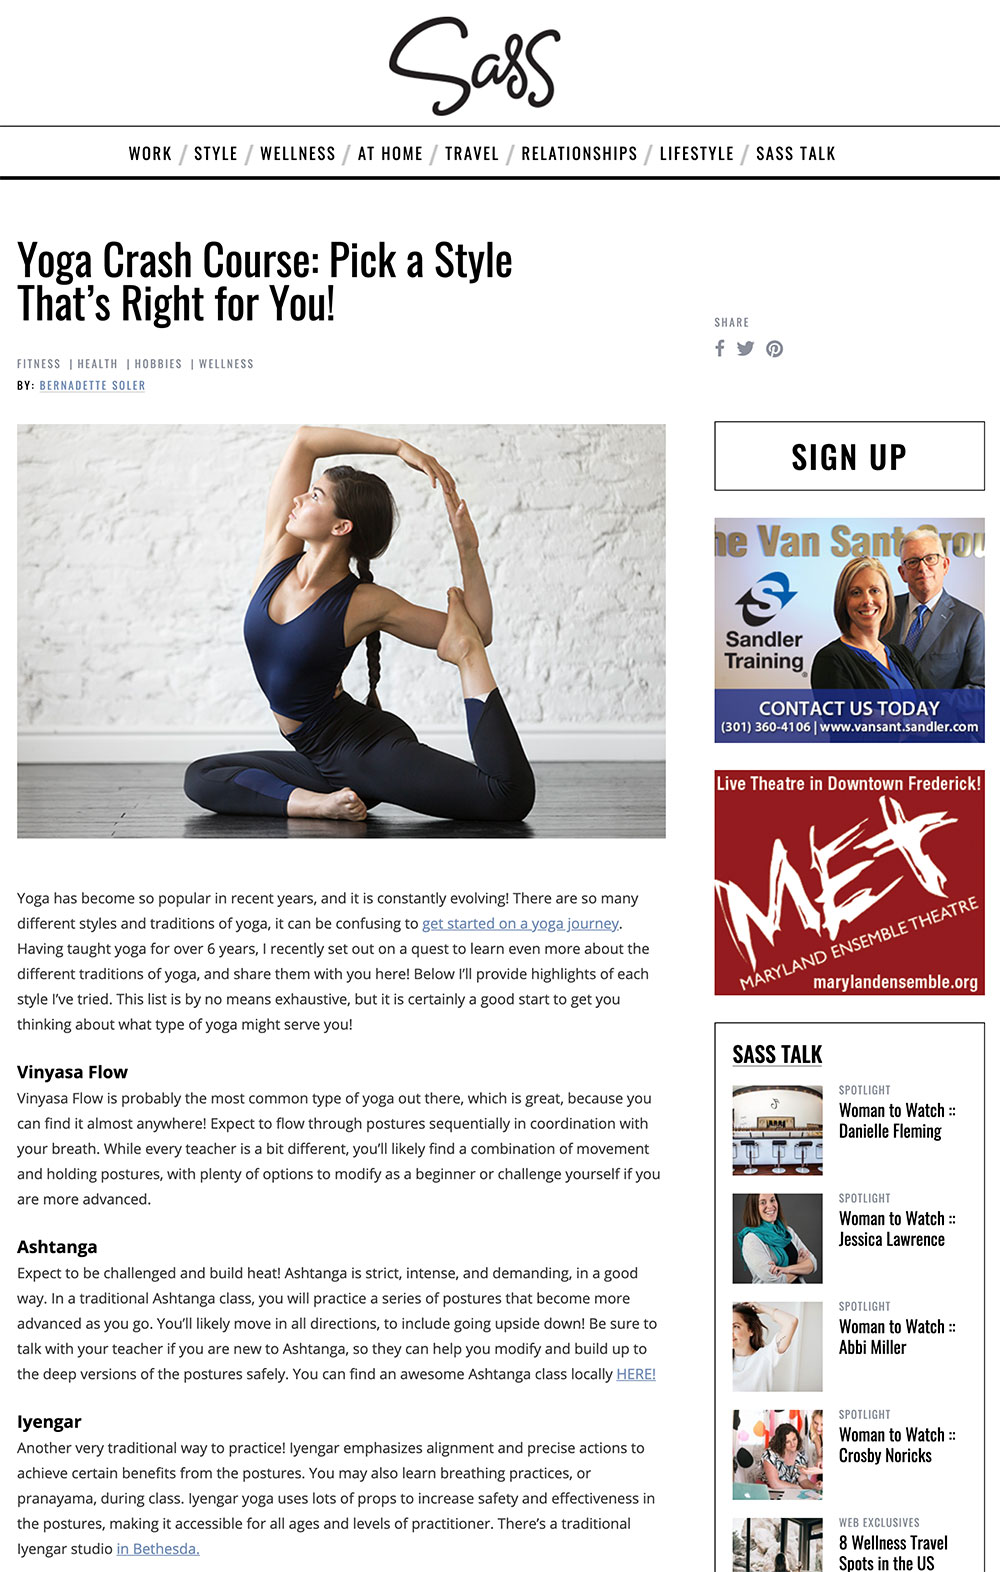 Article about Yoga styles by Bernadette Soler on Sass